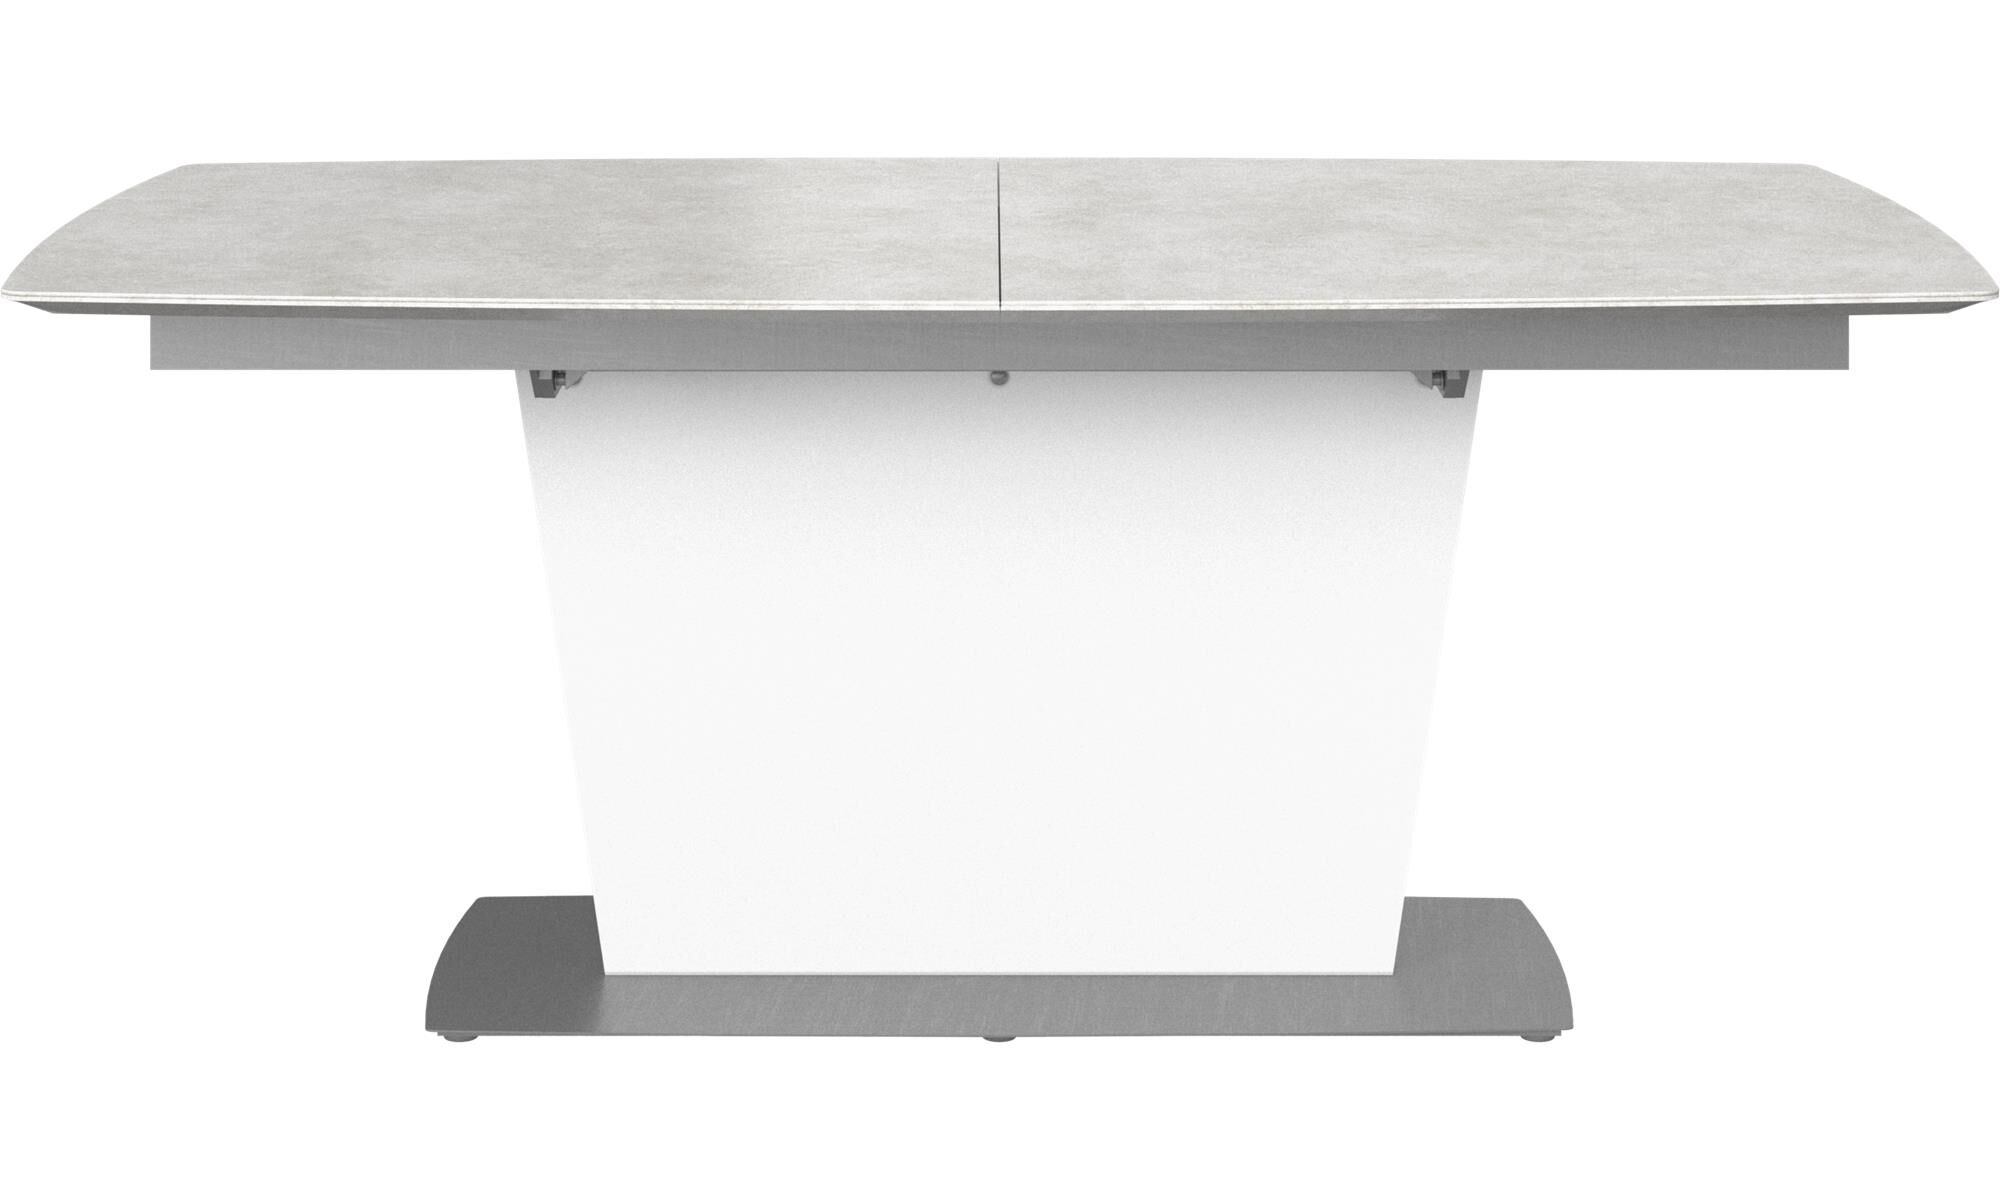 Dining Tables   Milano Table With Supplementary Tabletop   Square   White    Lacquered